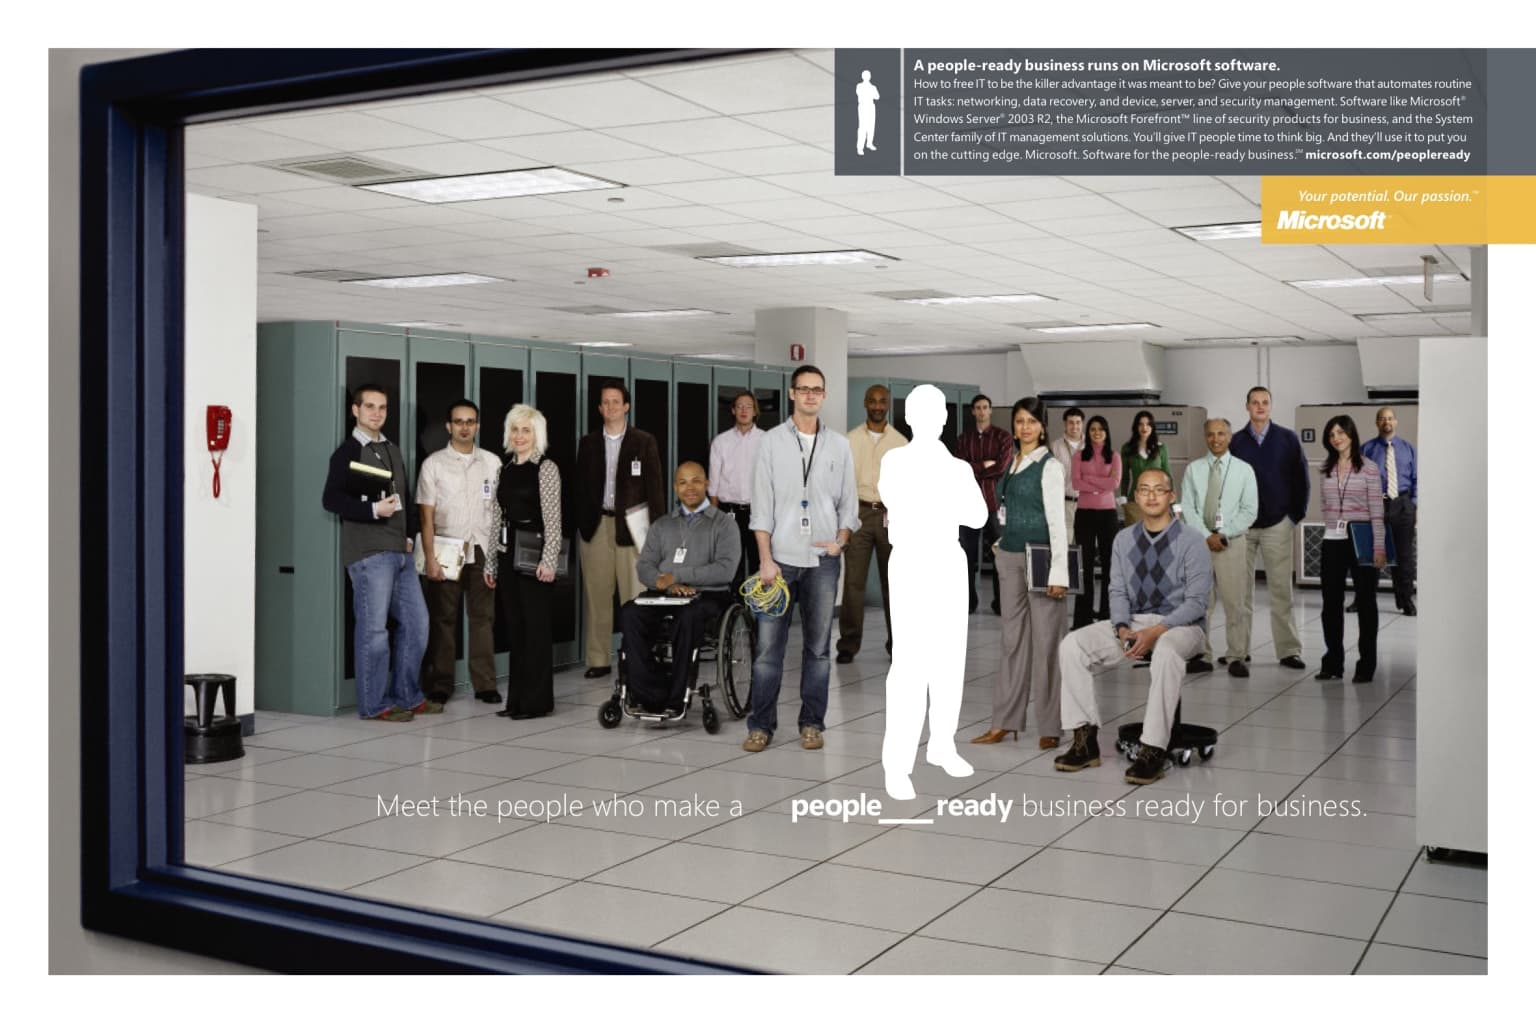 Microsoft people_ready campaign